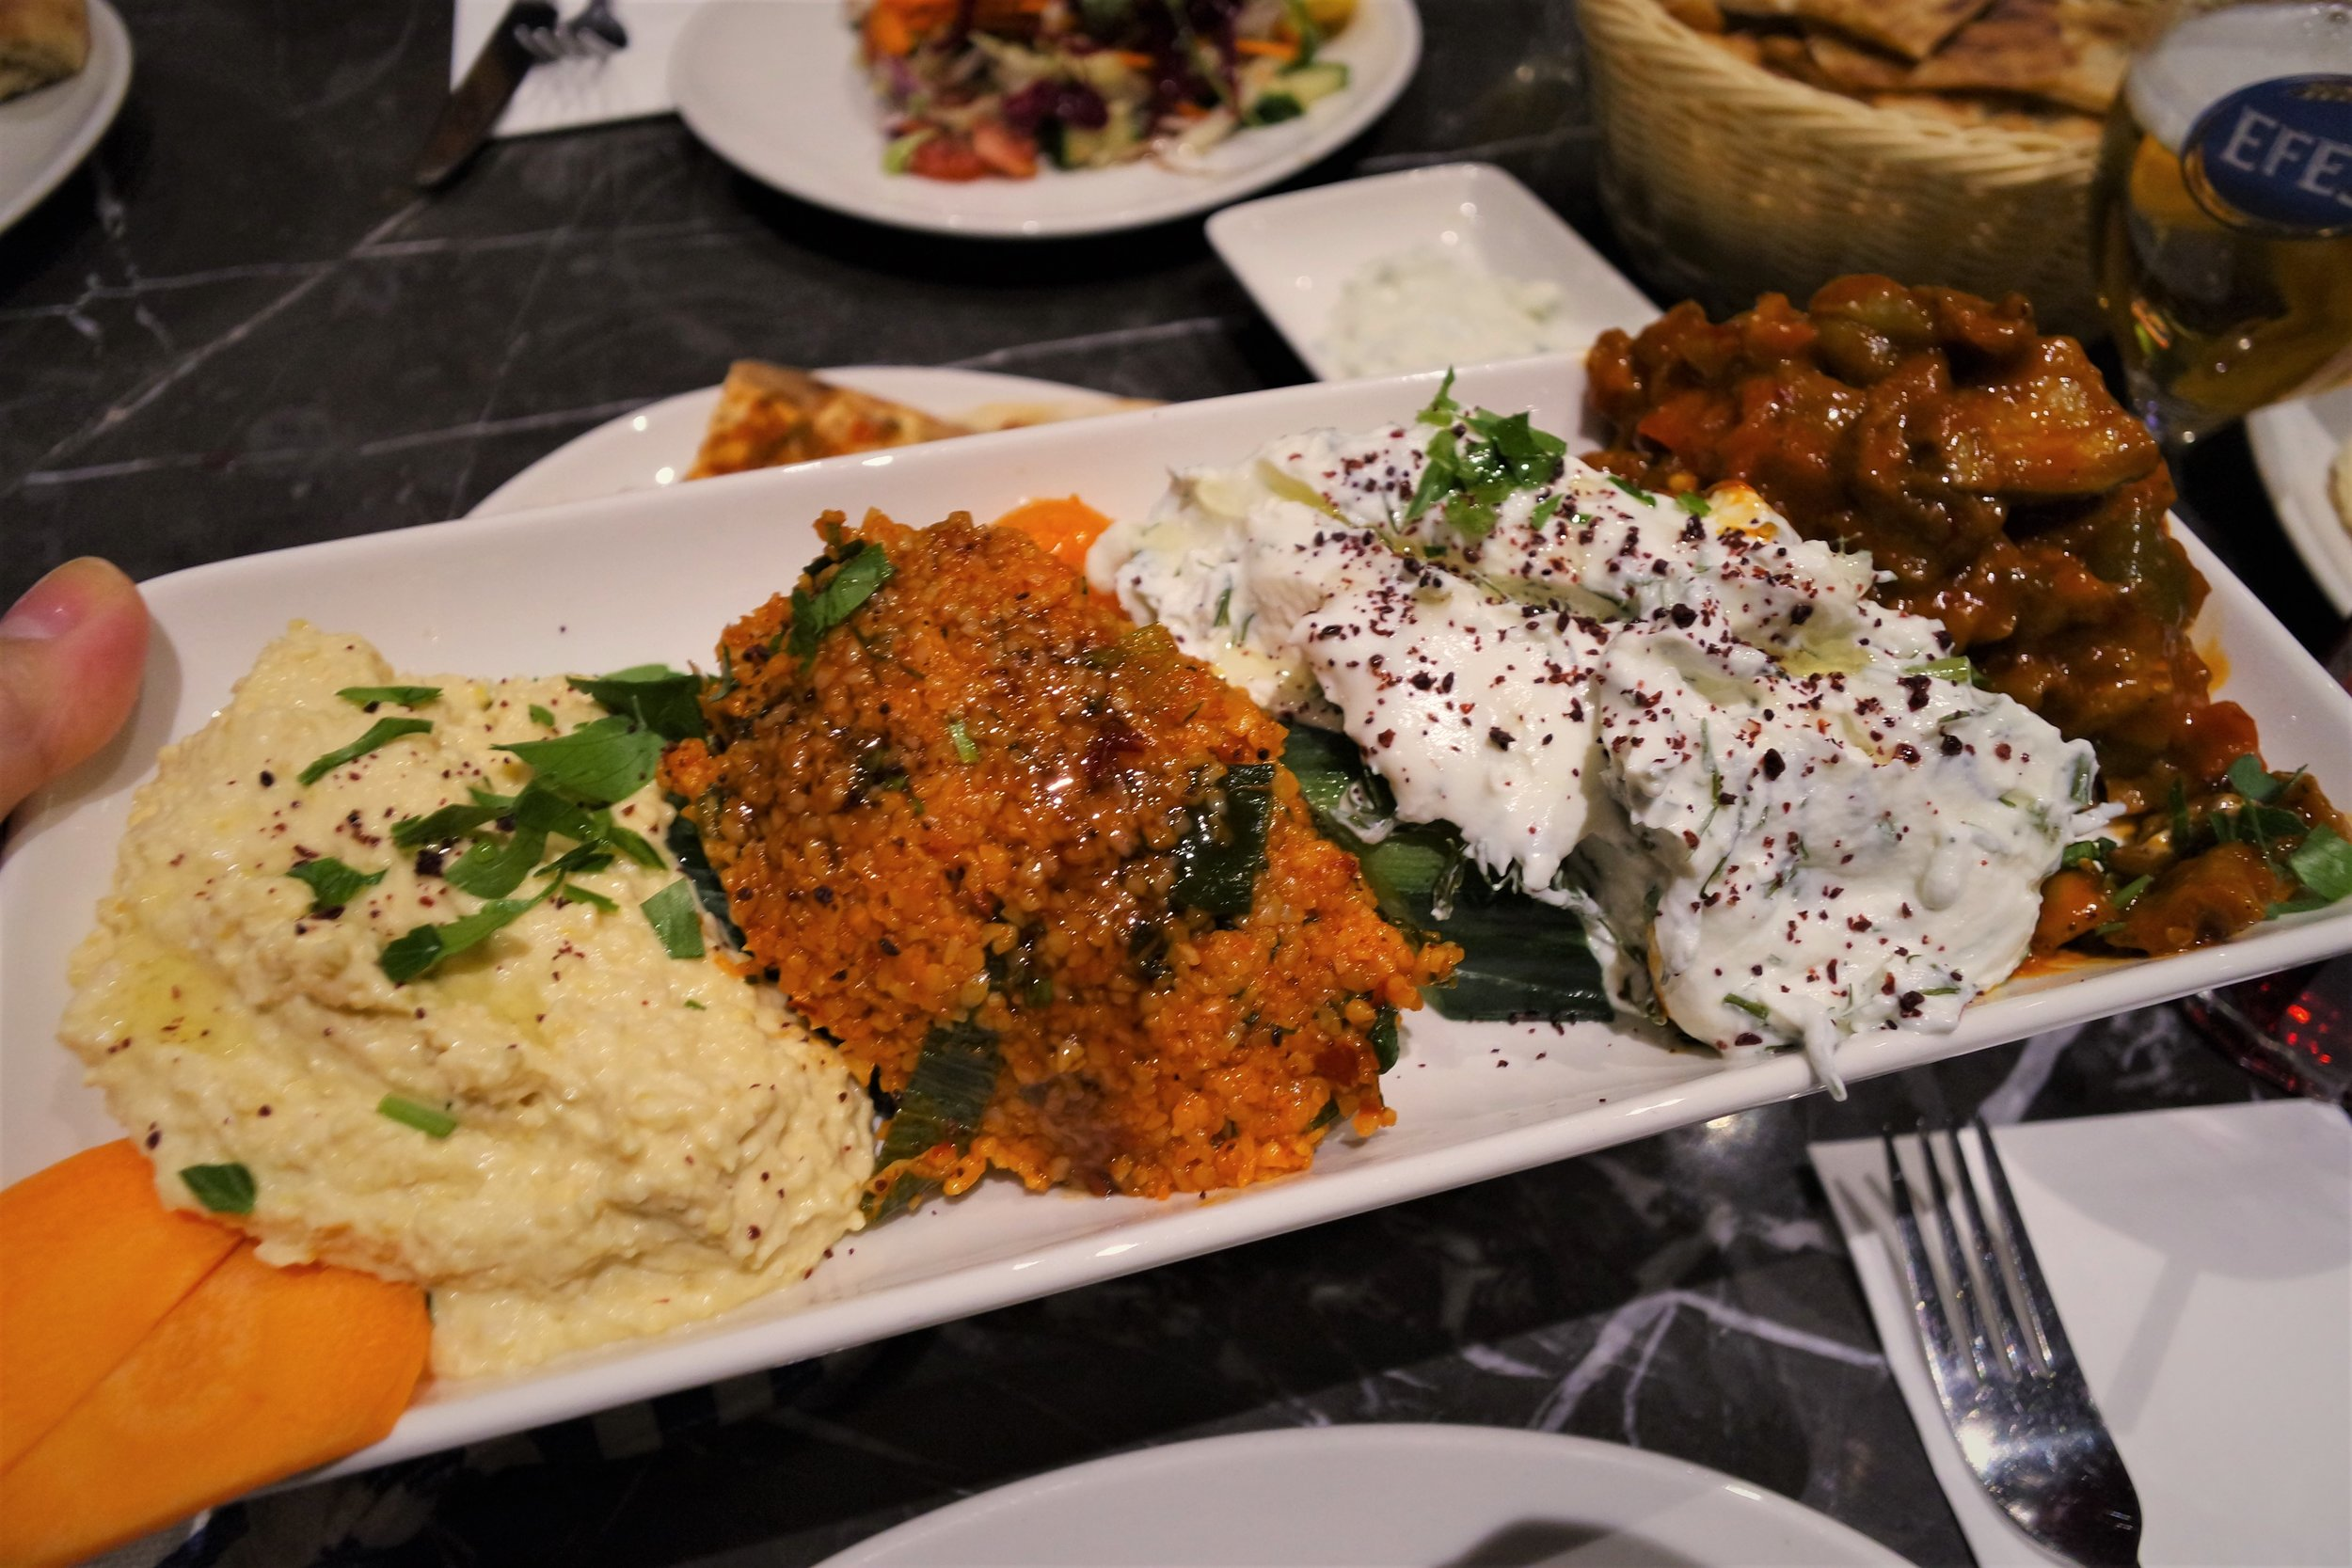 Gökyüzü - Small mixed mezze (£9.50)